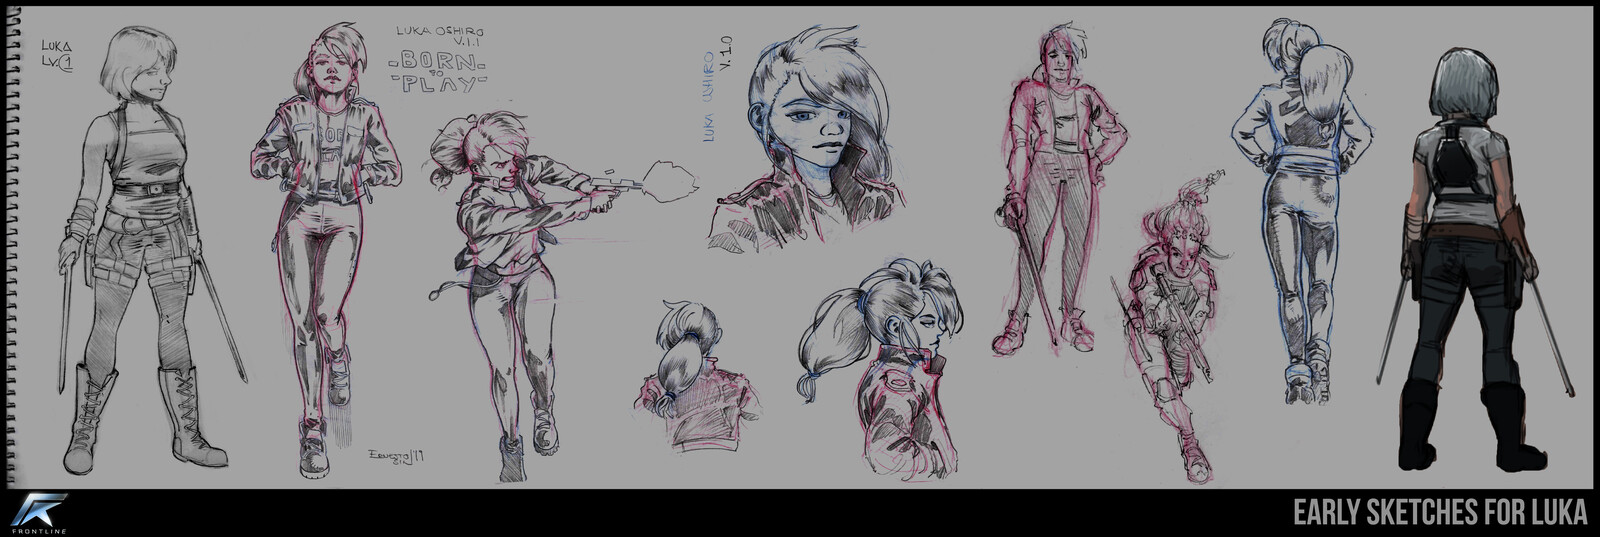 Very early and some of the first sketches for Luka Oshiro.